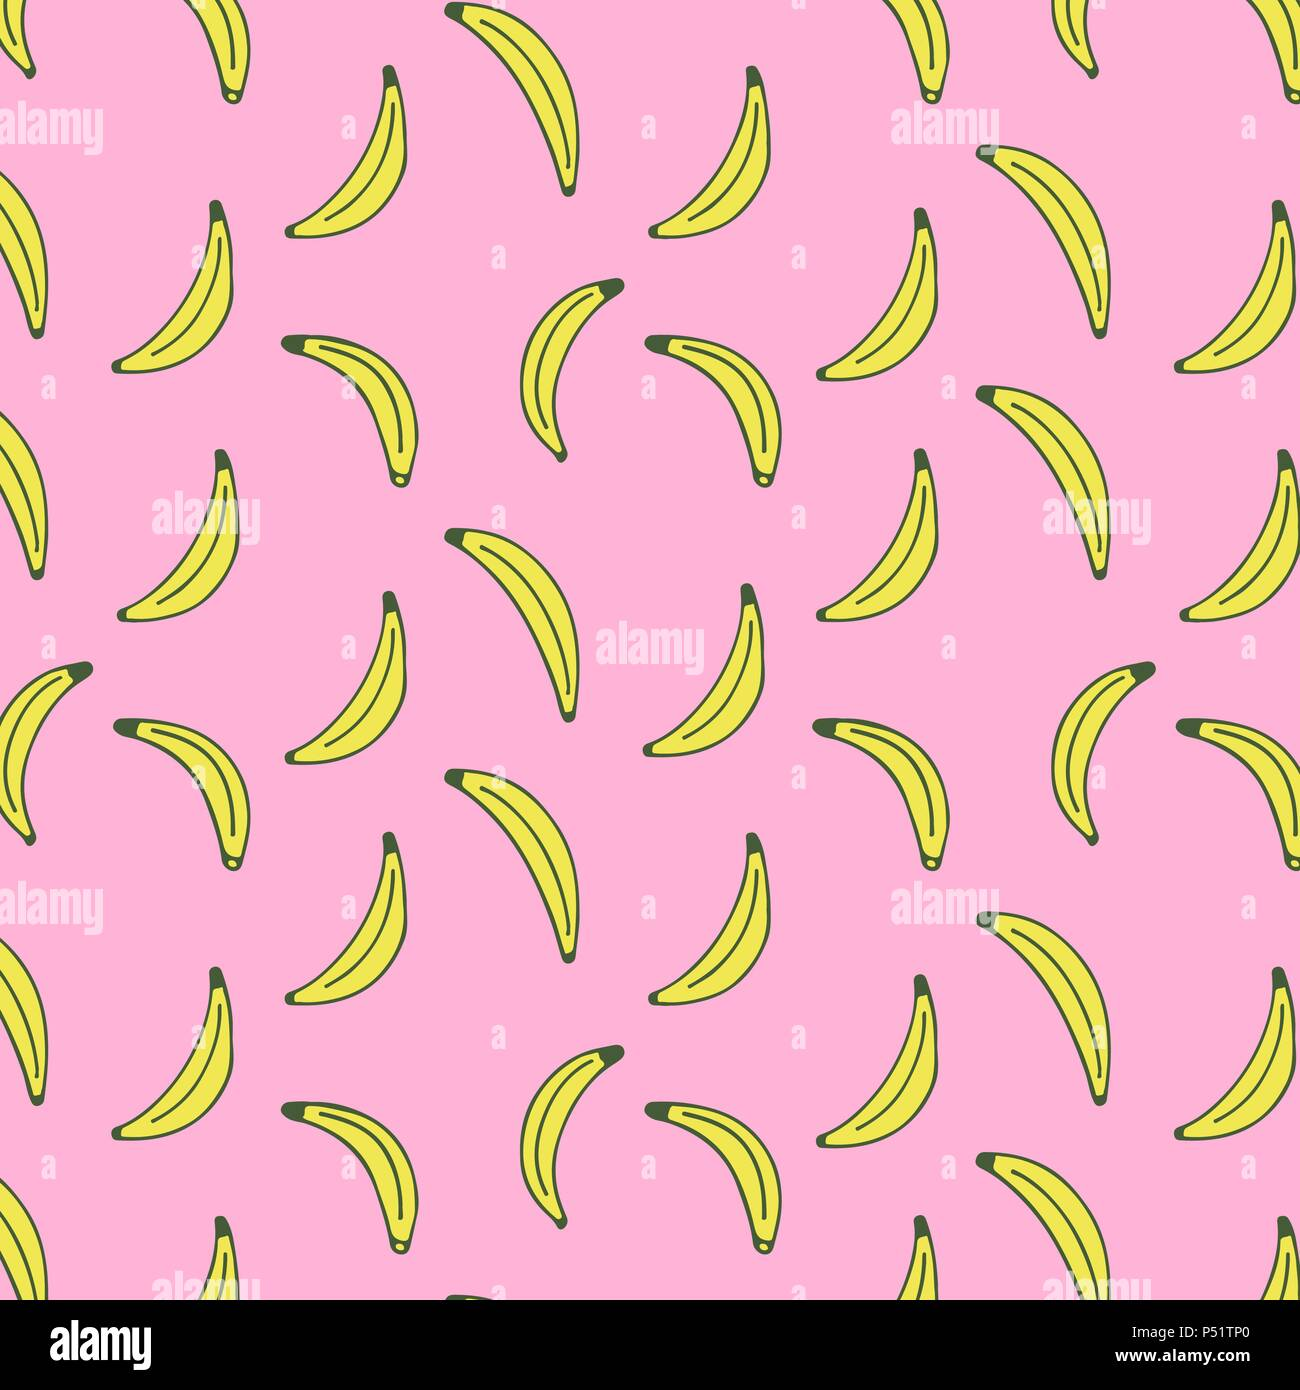 seamless pattern of bananas vector illustration food wallpapersvector illustration food wallpapers from fruits